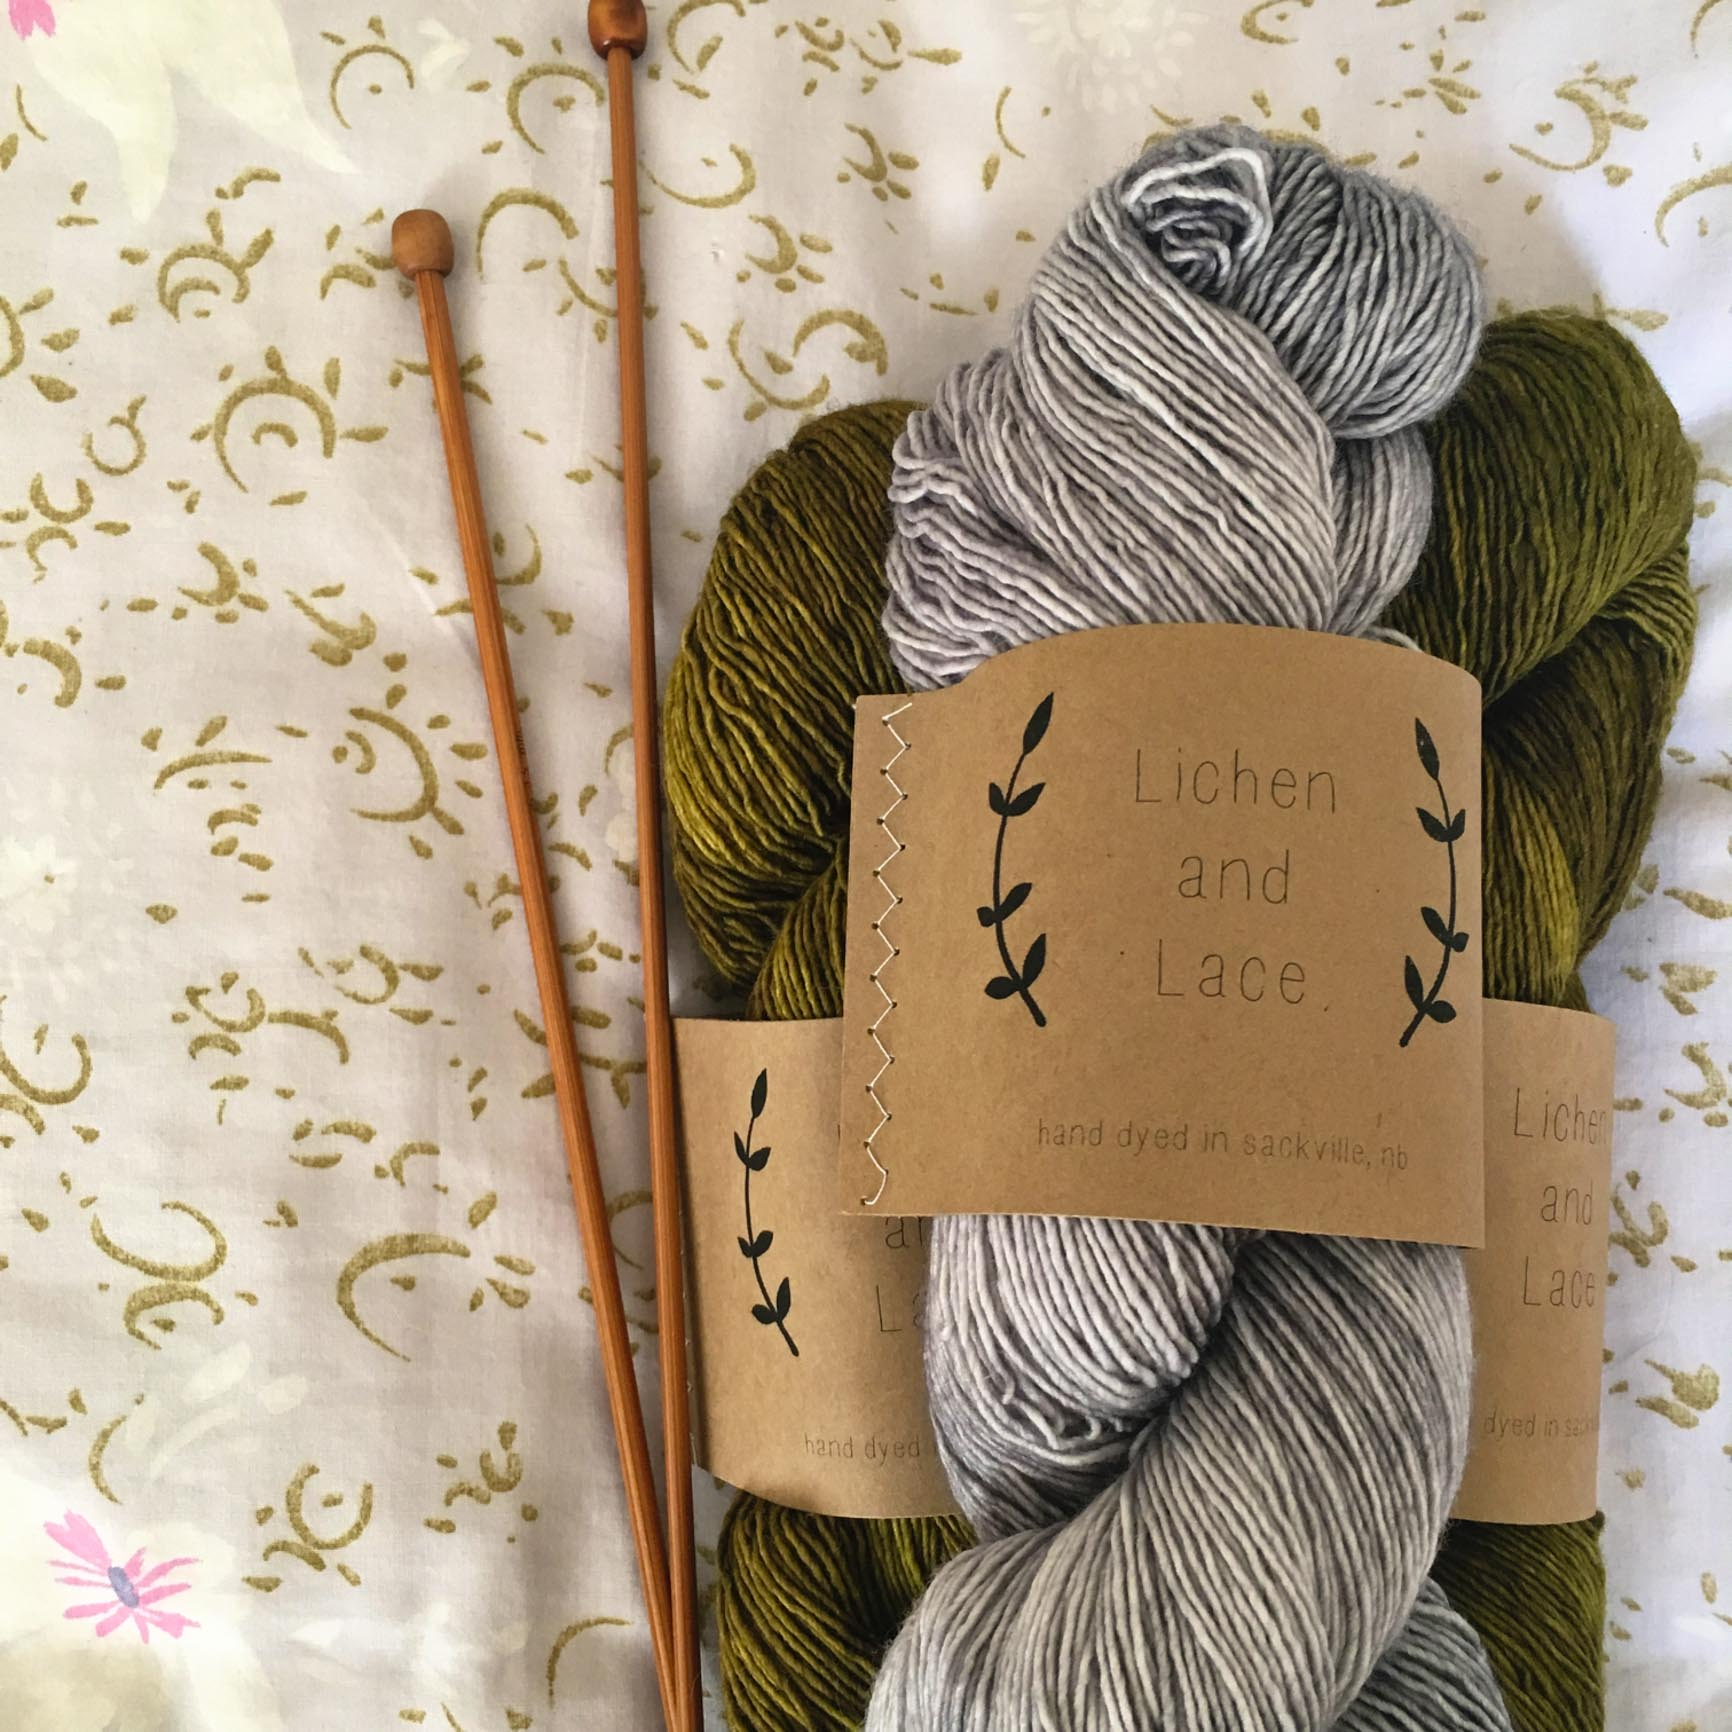 Lichen And Lace at Loop!